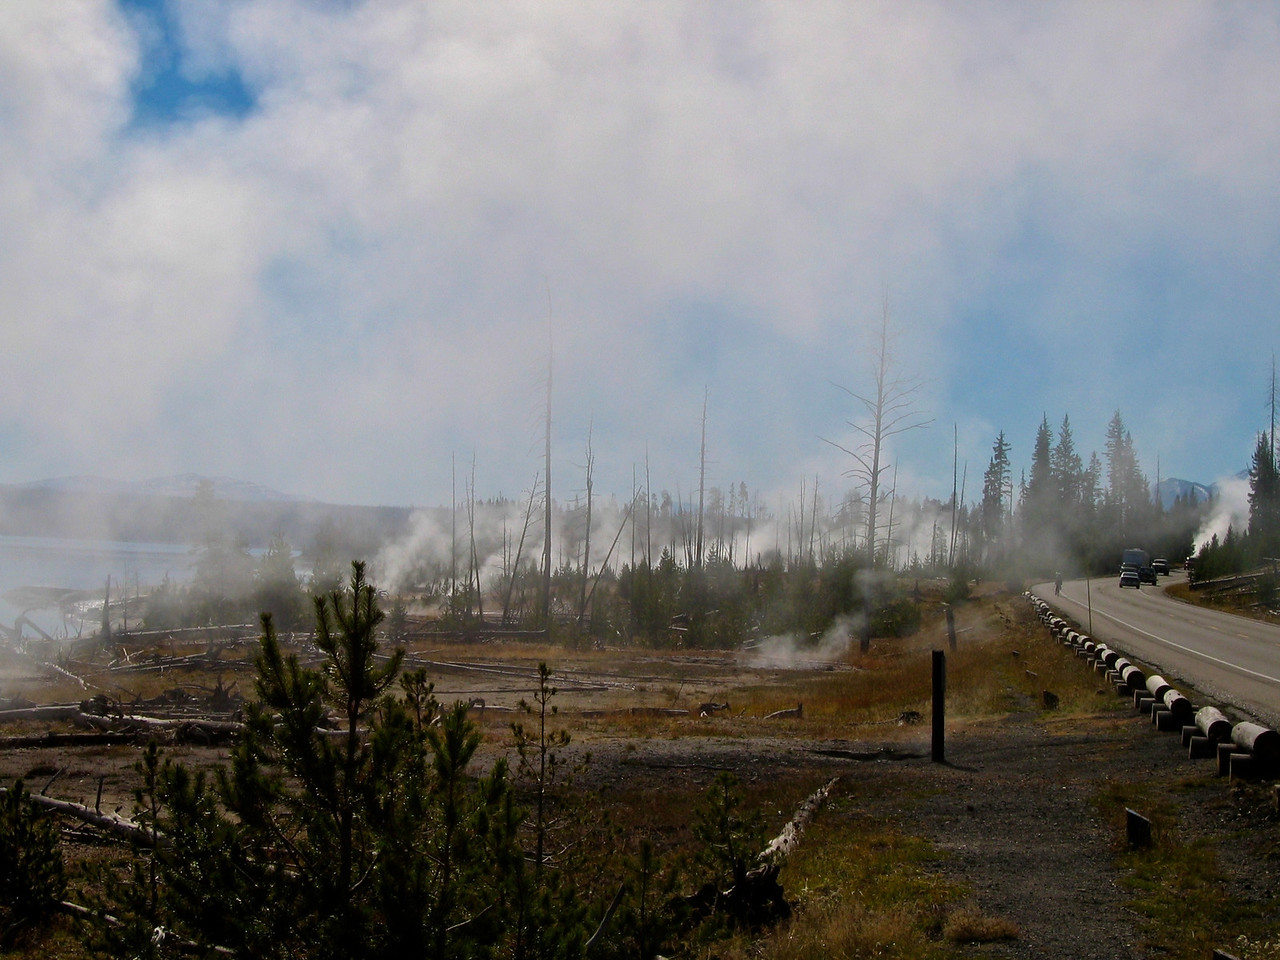 Yellowstone experiences thousands of small earthquakes every year, virtually all of which are undetectable to people. There have been six earthquakes with at least magnitude 6 or greater in historical times, including a 7.5 magnitude quake that struck just outside the northwest boundary of the park in 1959.